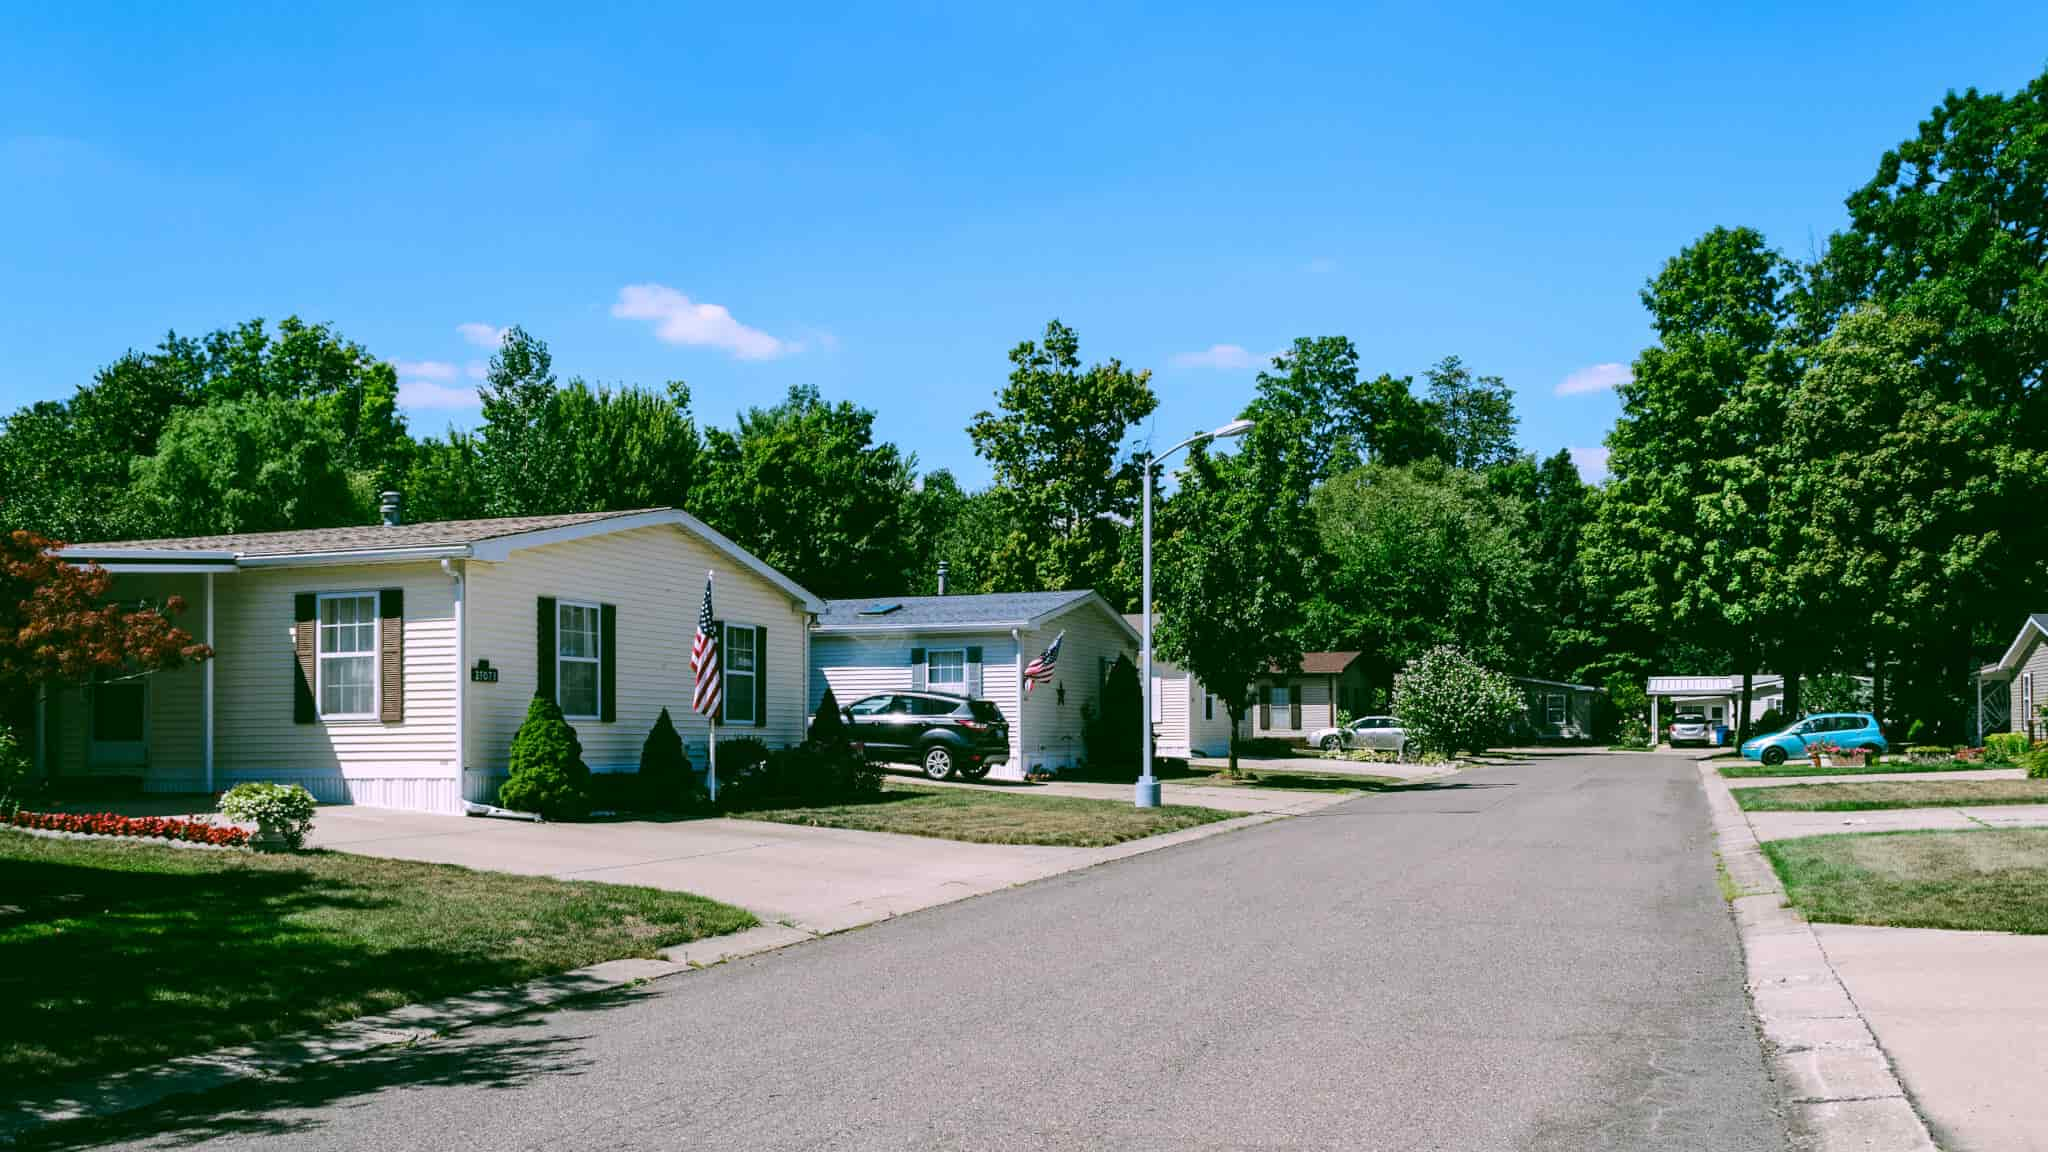 sell a mobile home park fast for cash as is.